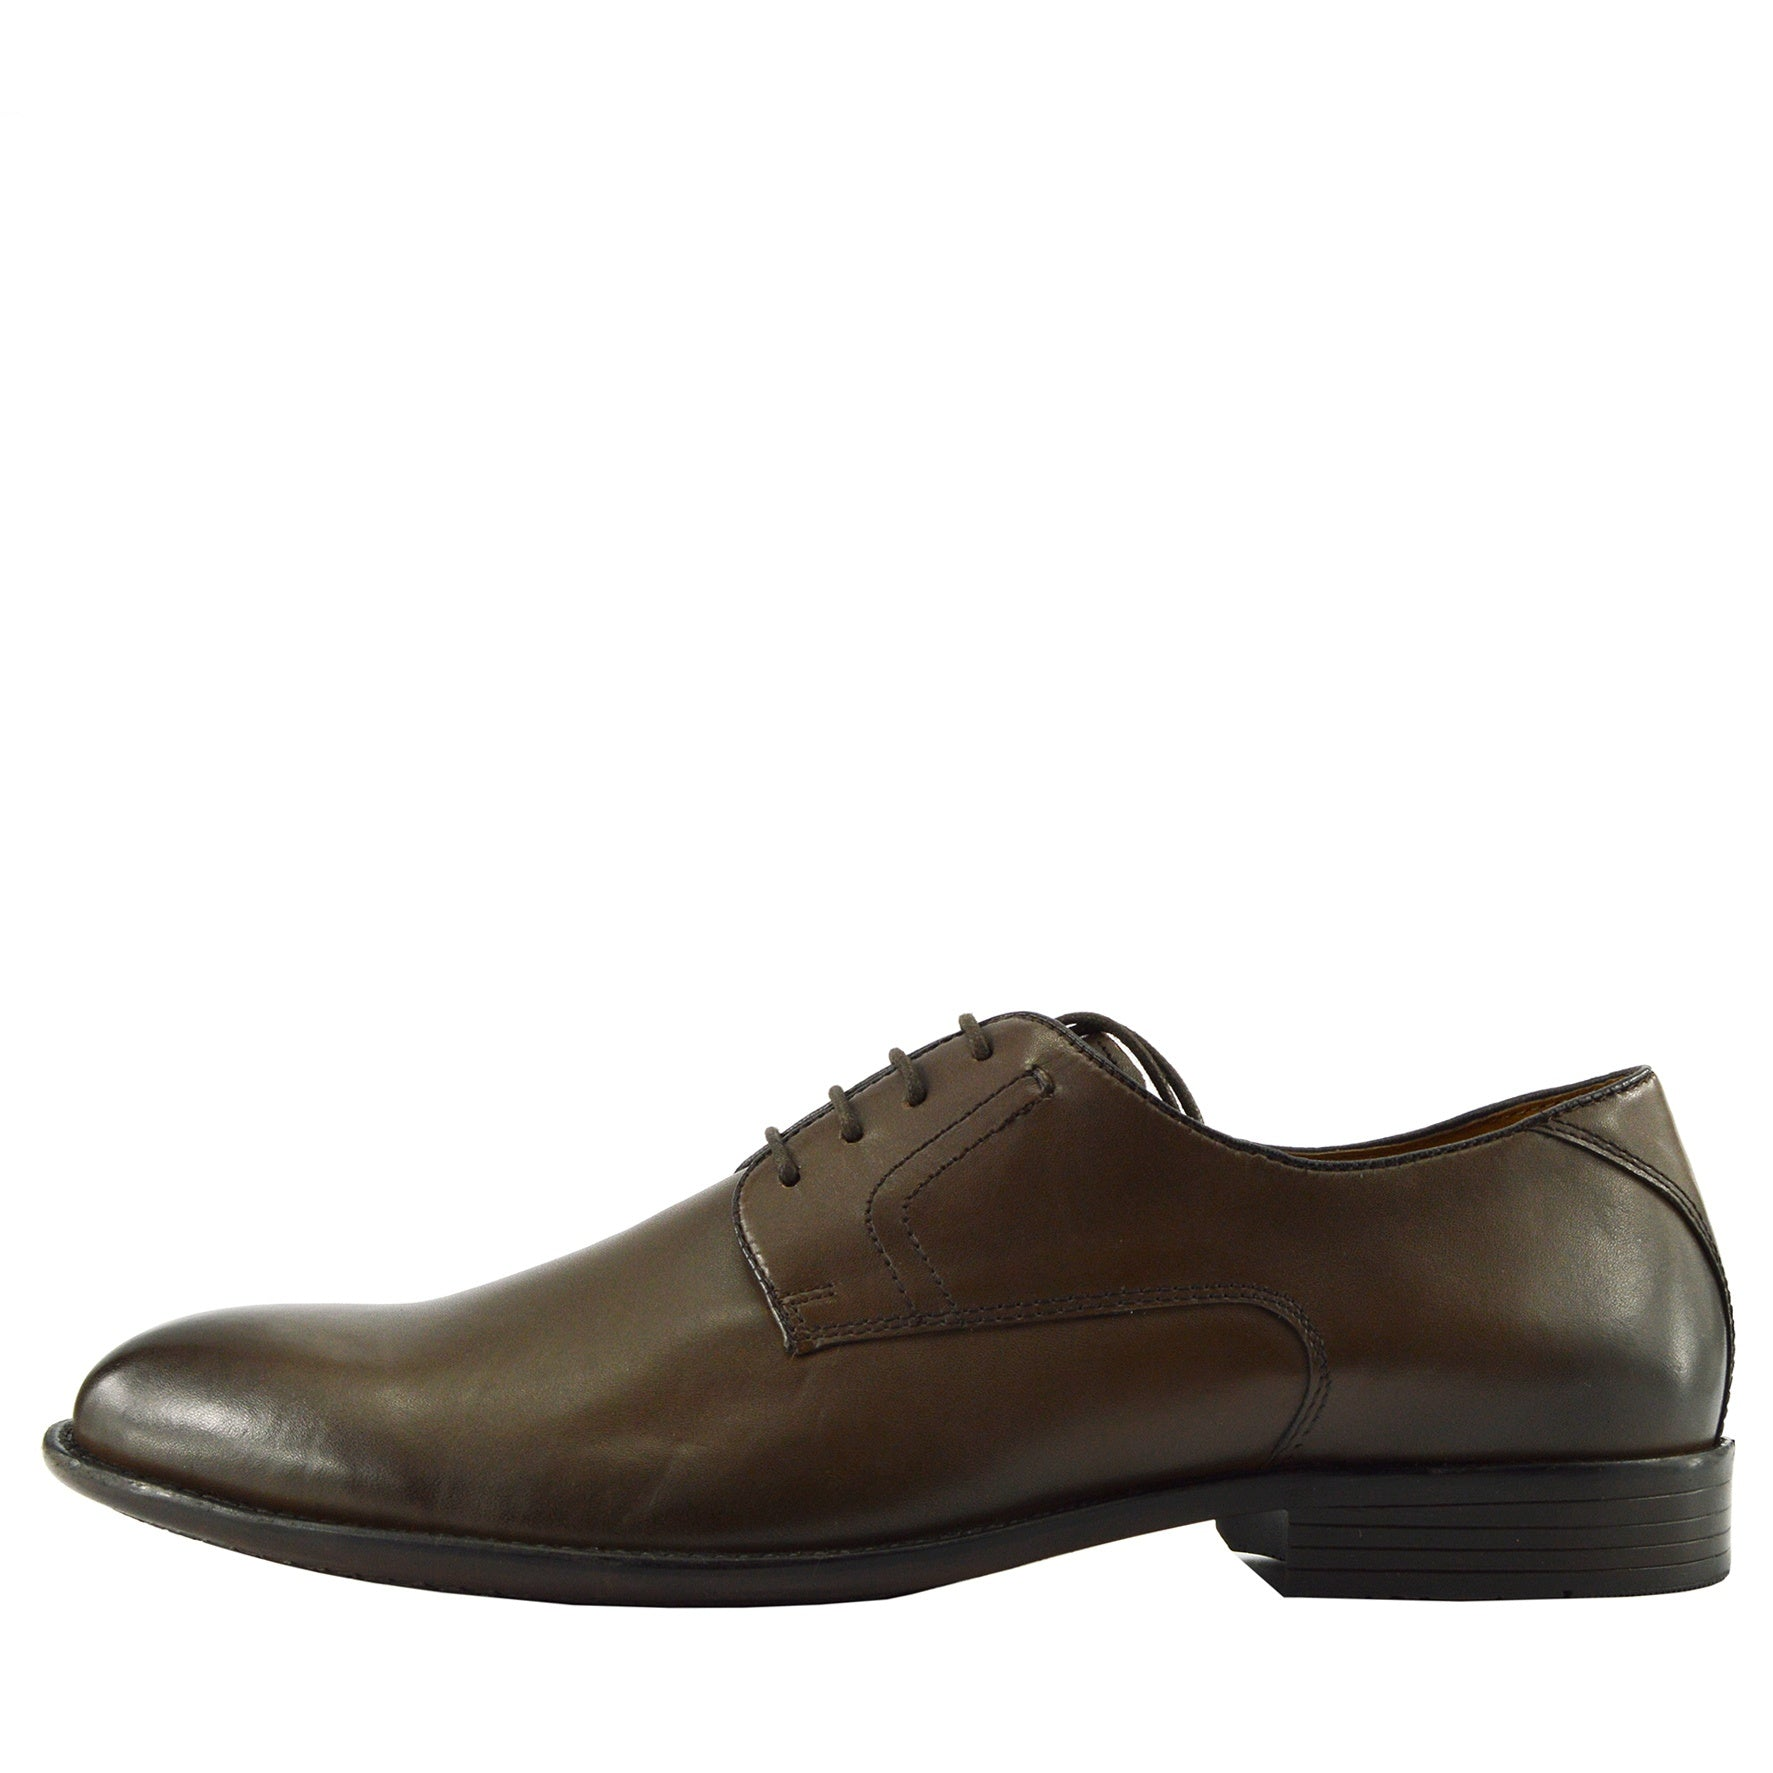 Men S Classic Oxford Real Leather Shoes Brogues Casual Lace Up Formal Shoes Brown Classic